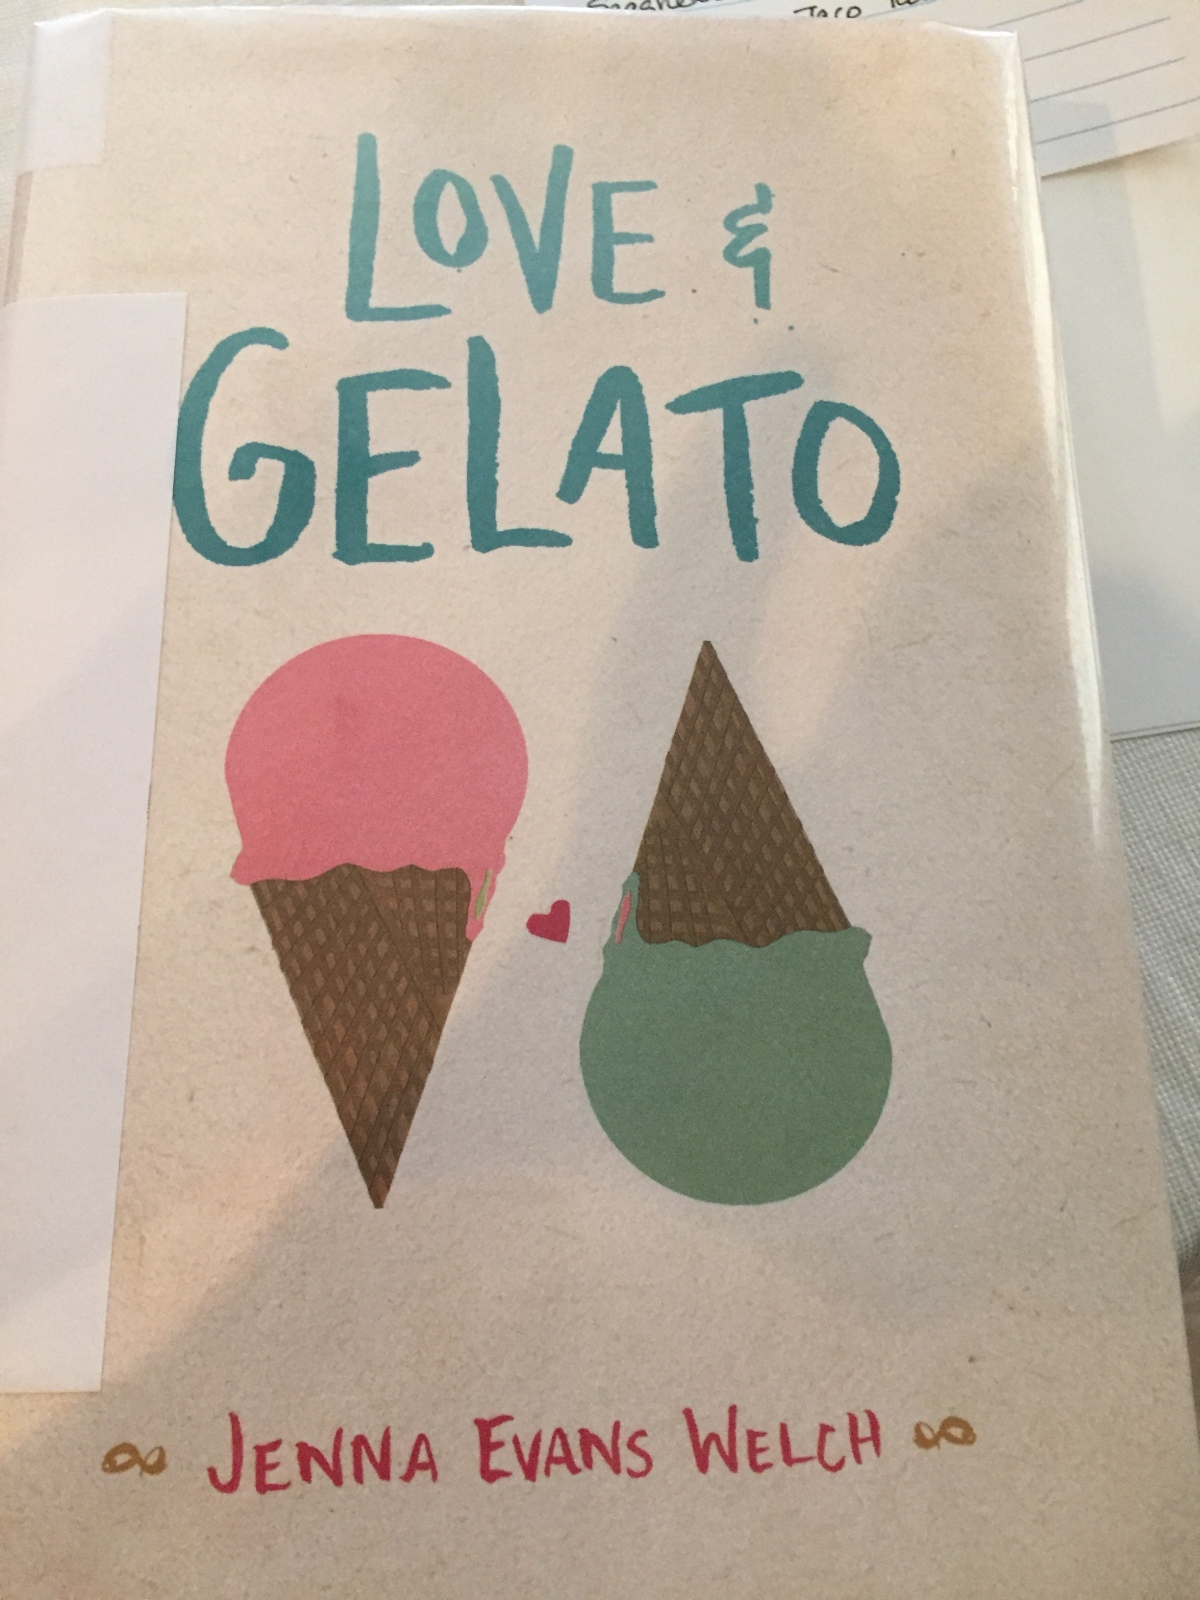 Beach House Book #10 – Love & Gelato by Jenna Evans Welch